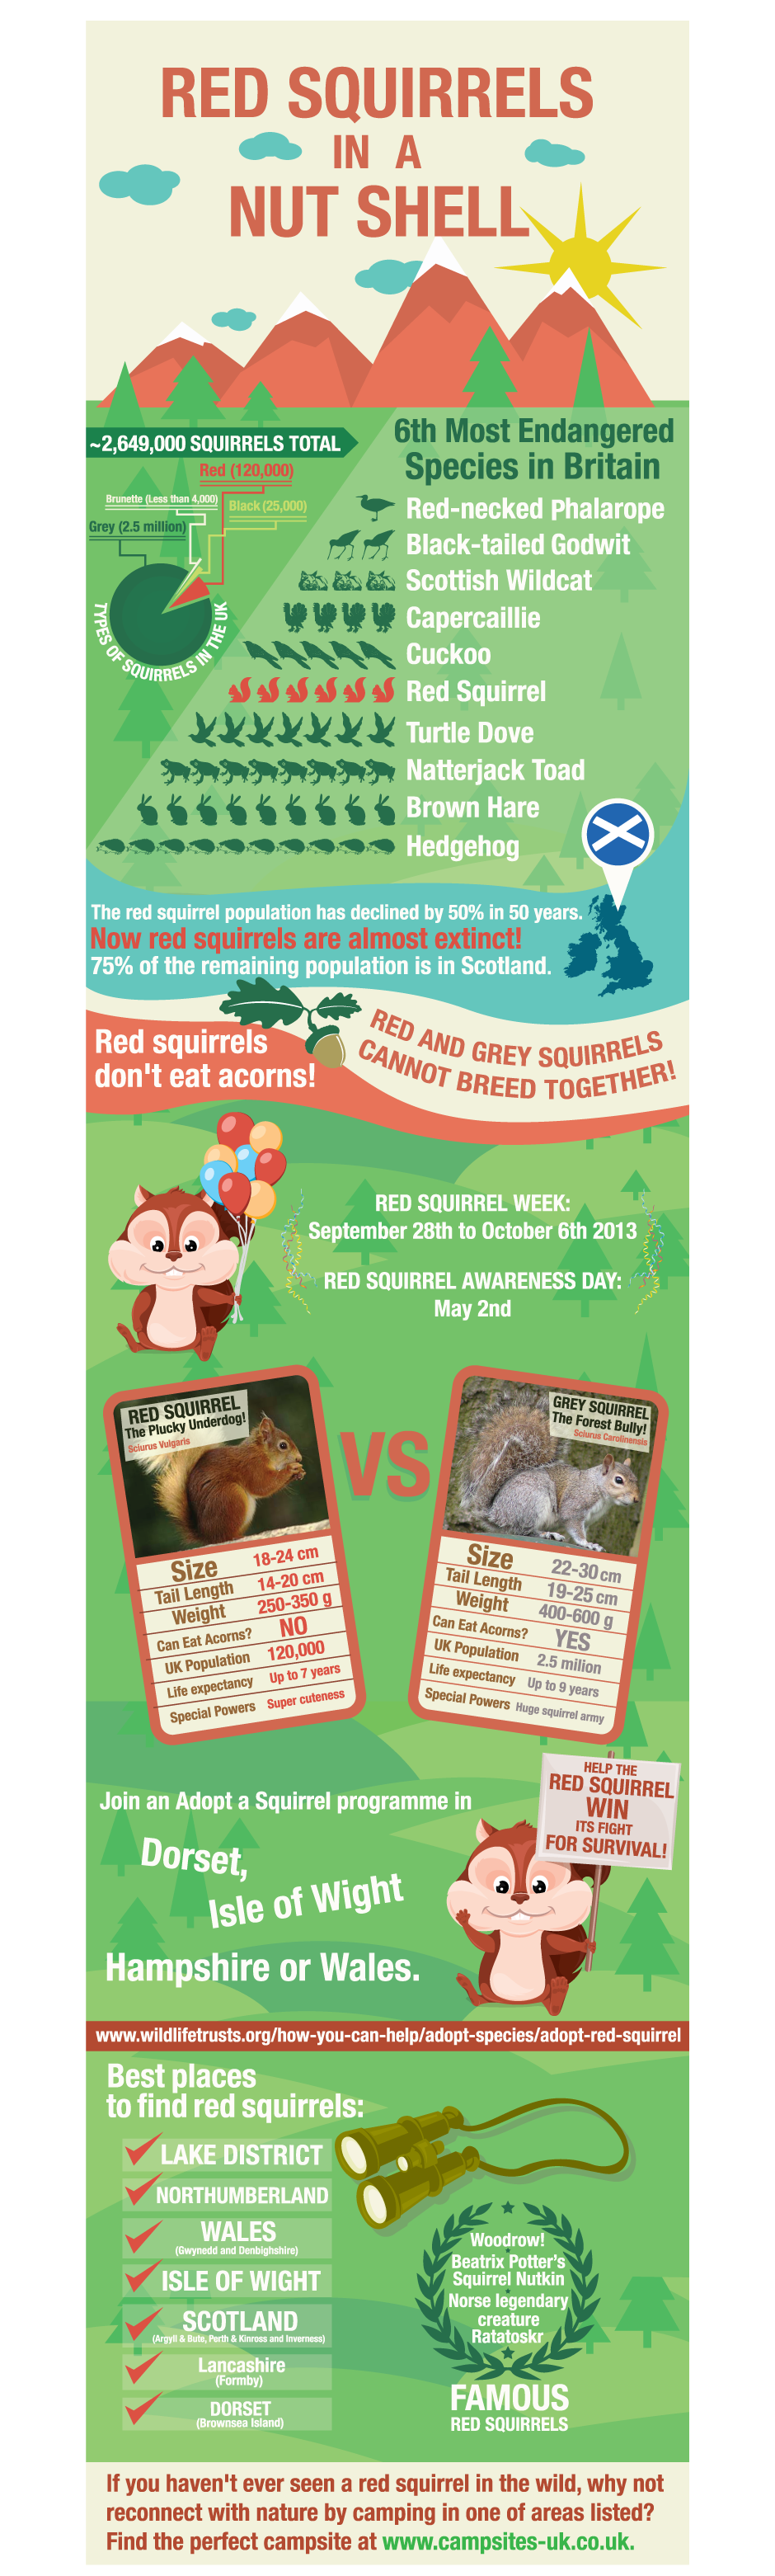 Squirrel-infographic-final-[Converted]